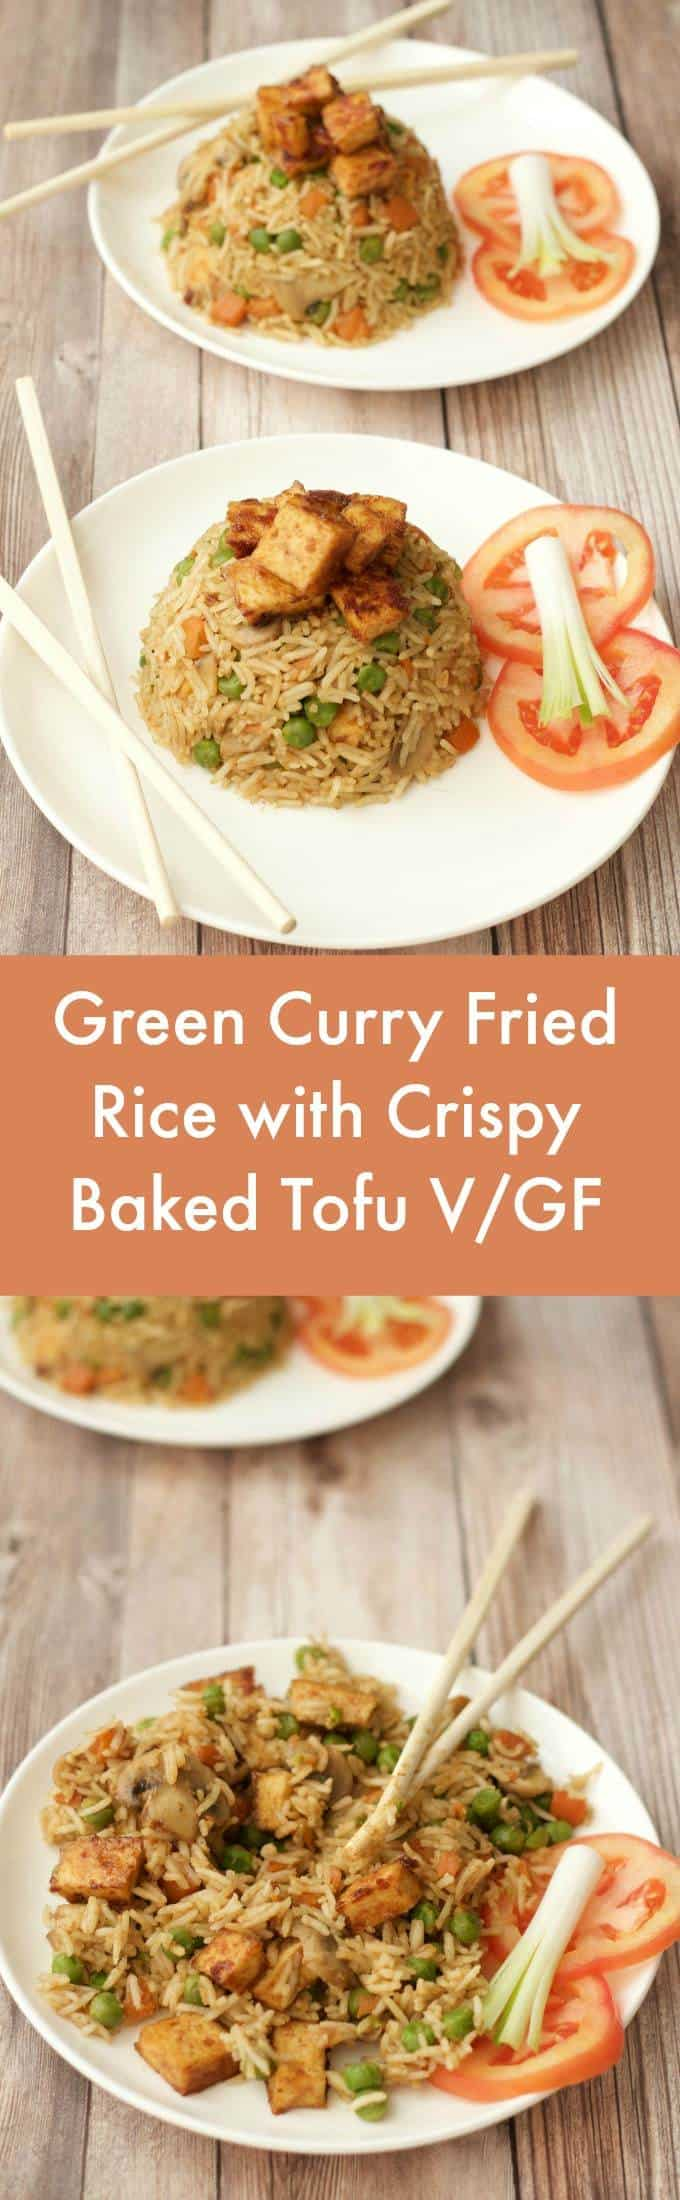 You know how you tend to have a few dinner favorites that you just recycle over and over again? This awesome vegan green curry fried rice is one of ours! | lovingitvegan.com